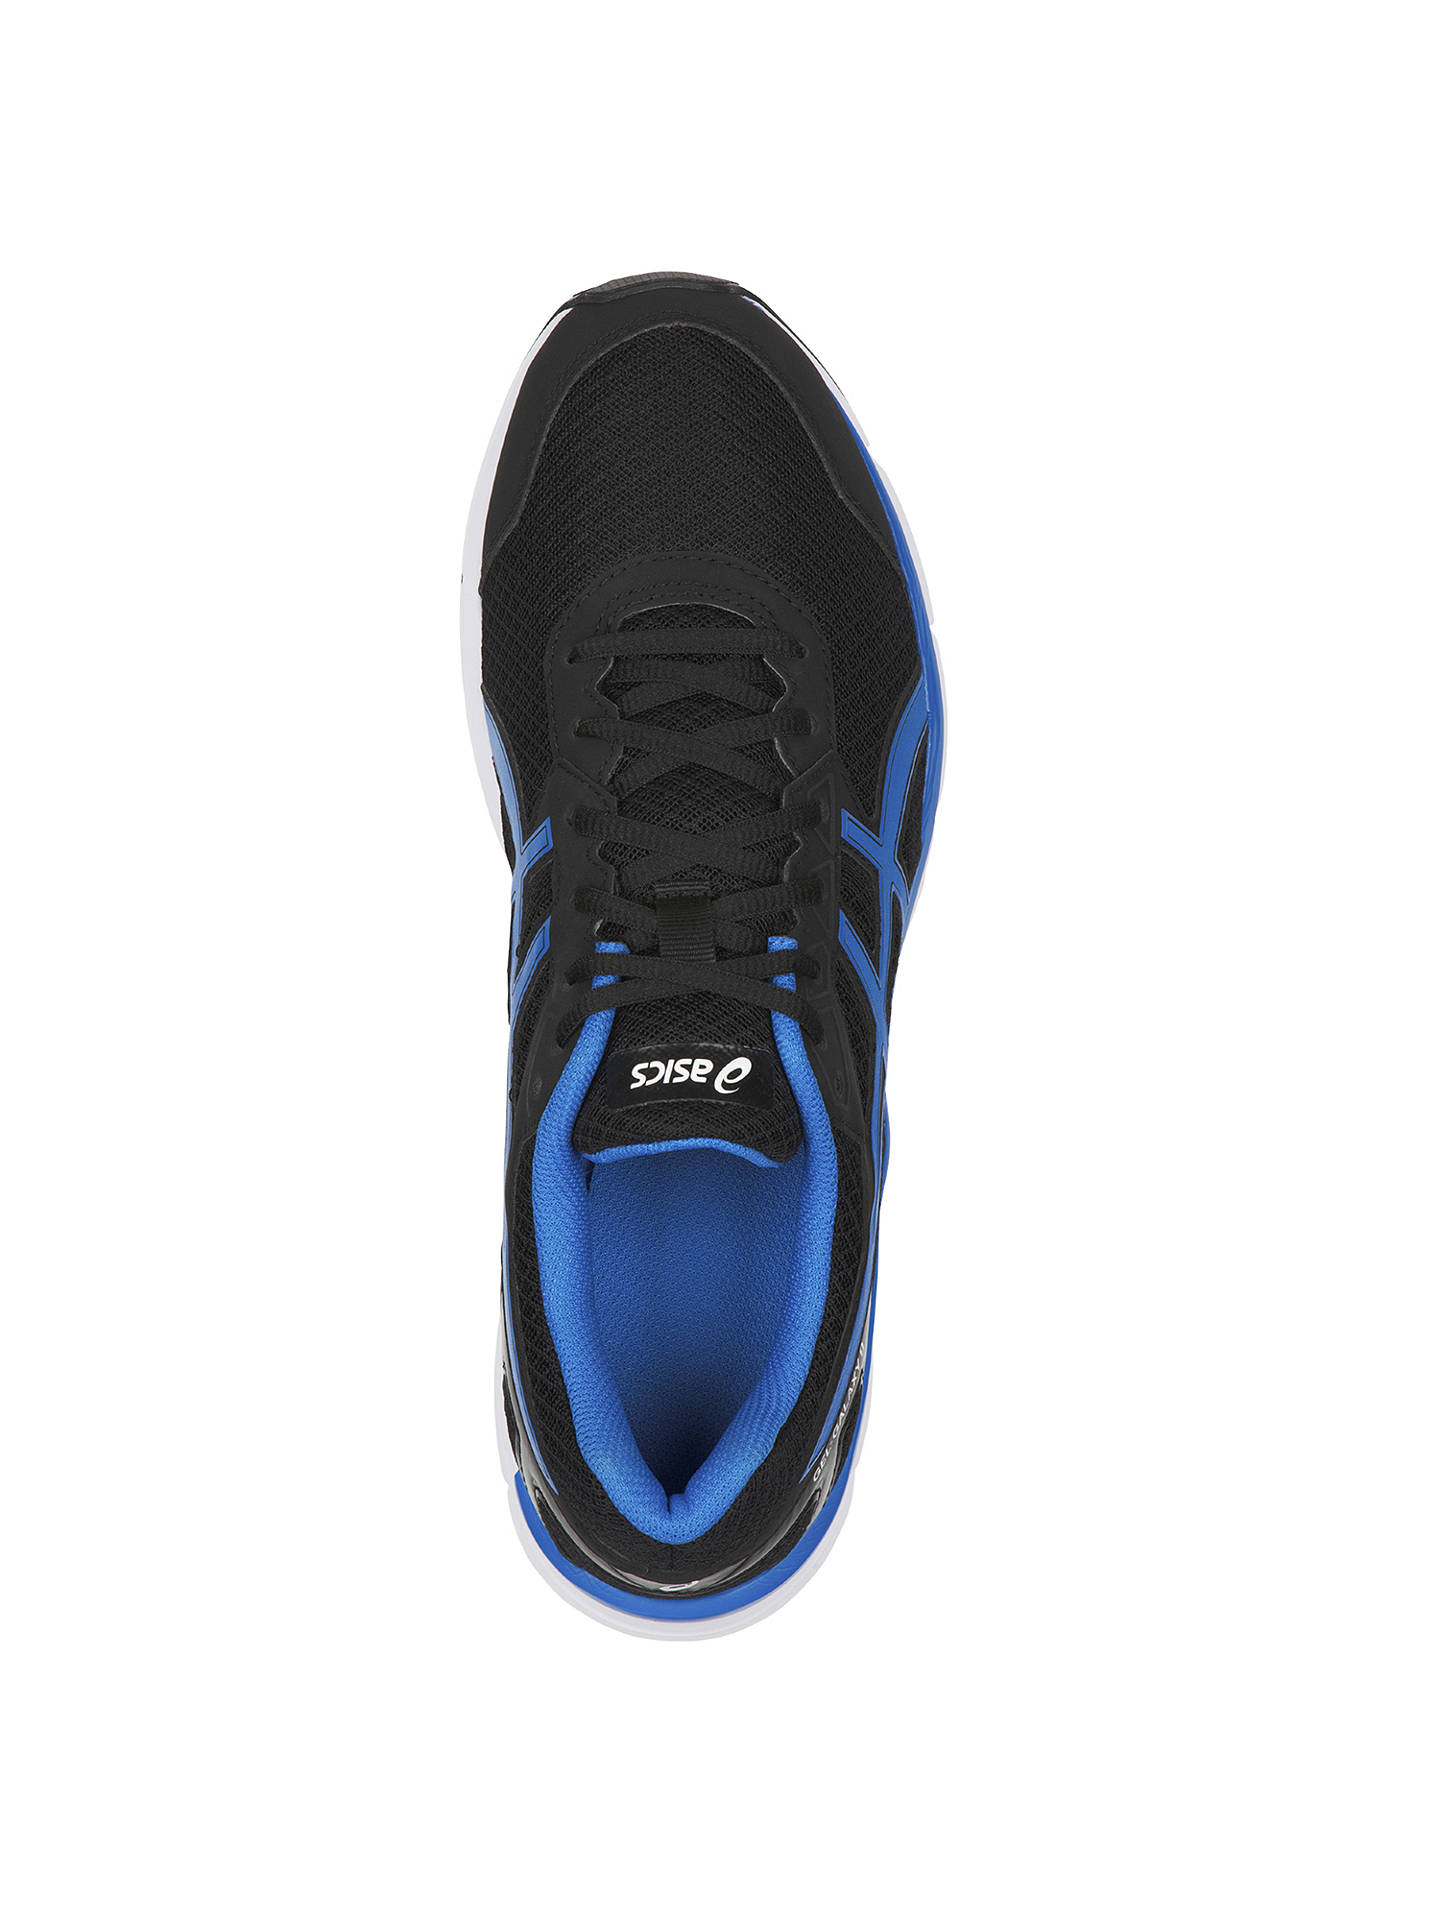 Asics Gel Blackblue Shoes At John Running Galaxy 9 Men's Lewis rrRwdqS